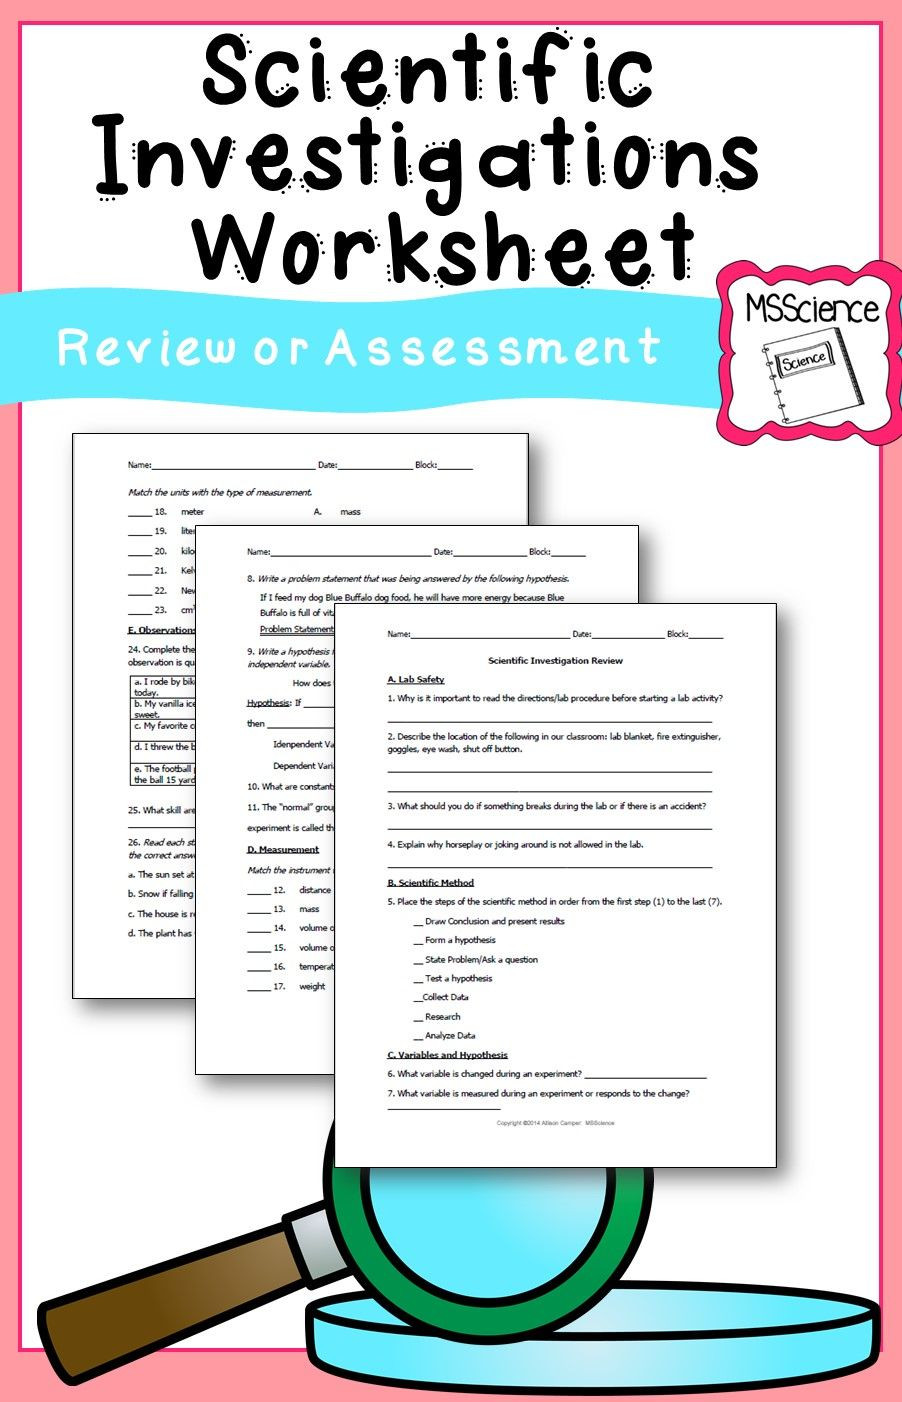 Scientific Method Worksheets 5th Grade Scientific Investigation Worksheet